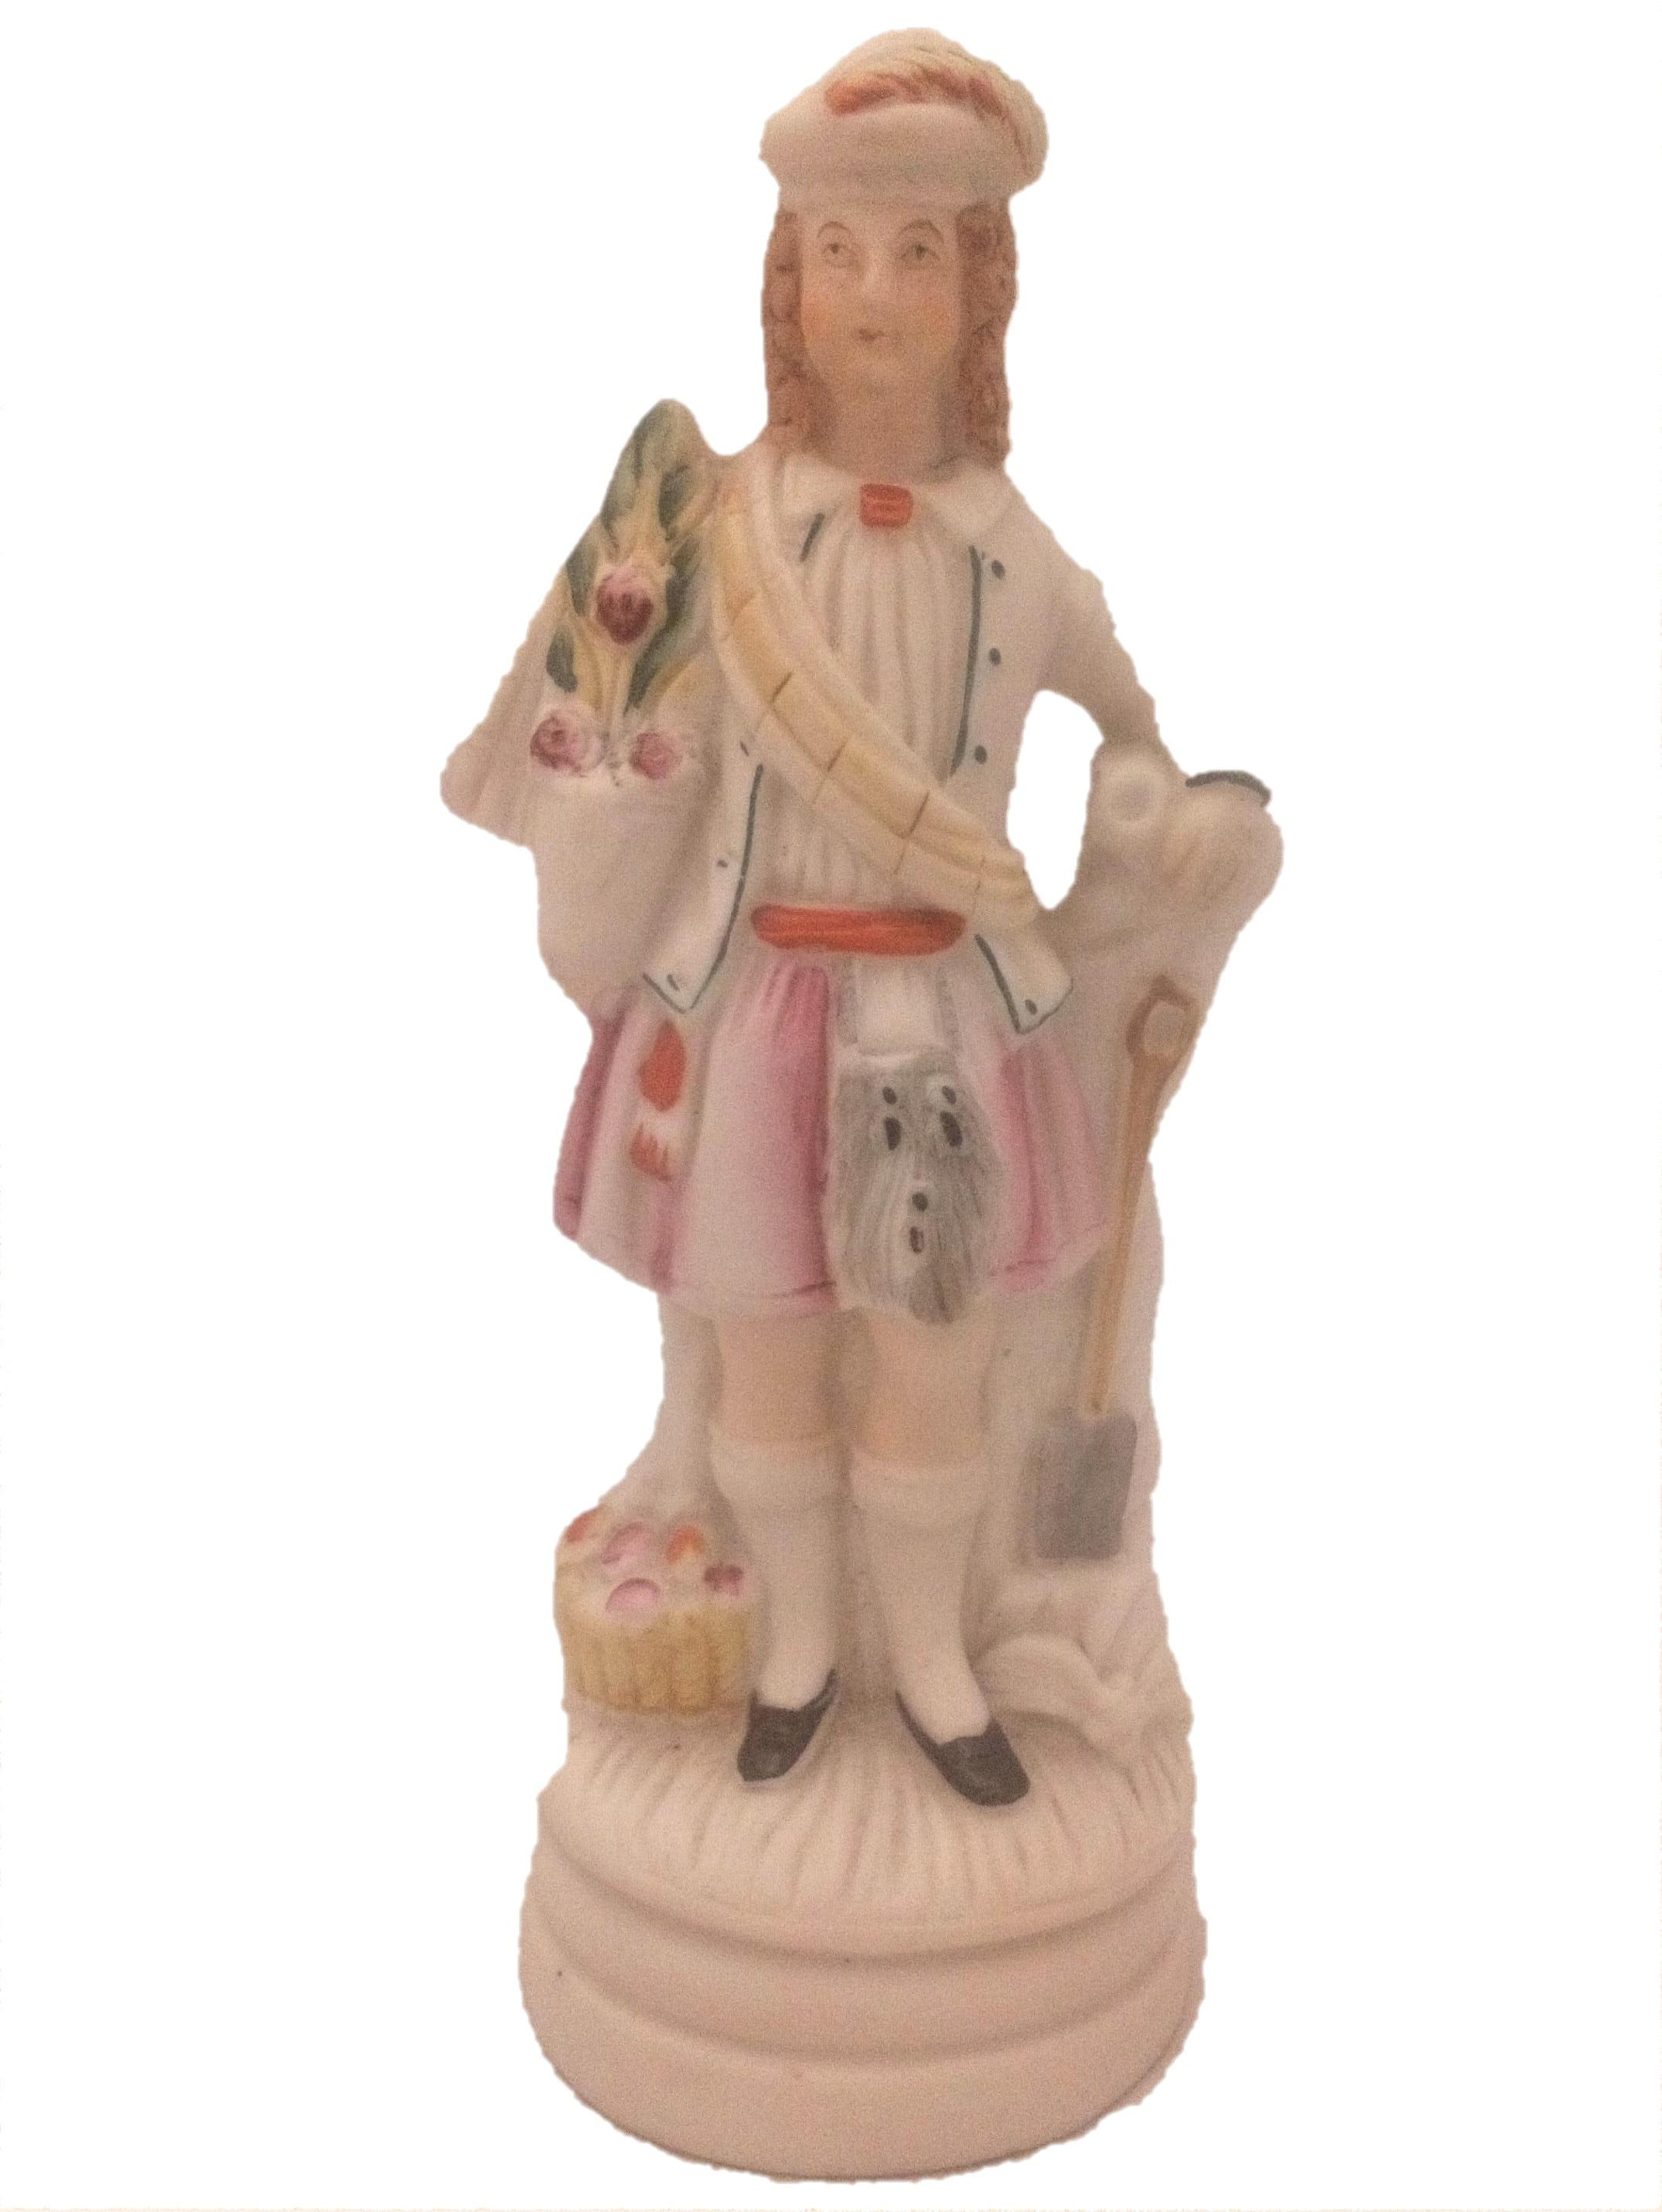 Antique European Continental Porcelain Figurine of a Scottish Gardener dressed in a Kilt holding a plant pot circa 1850